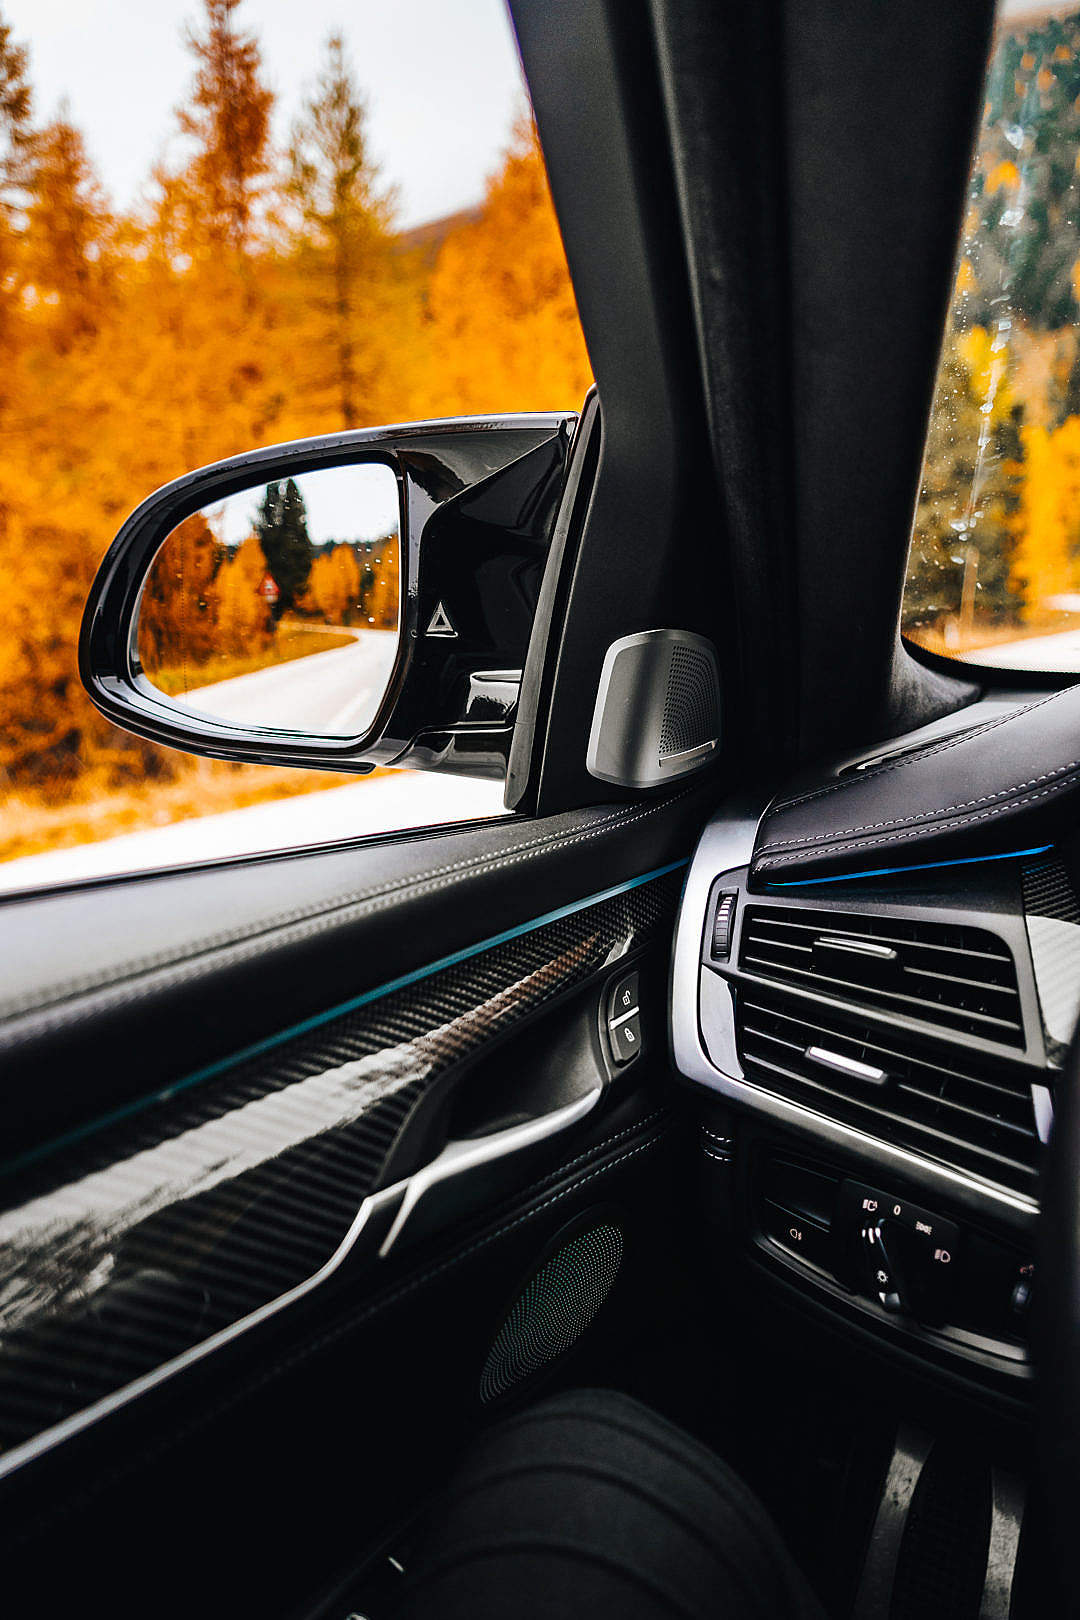 Download Side View Mirror in a Luxury Car FREE Stock Photo